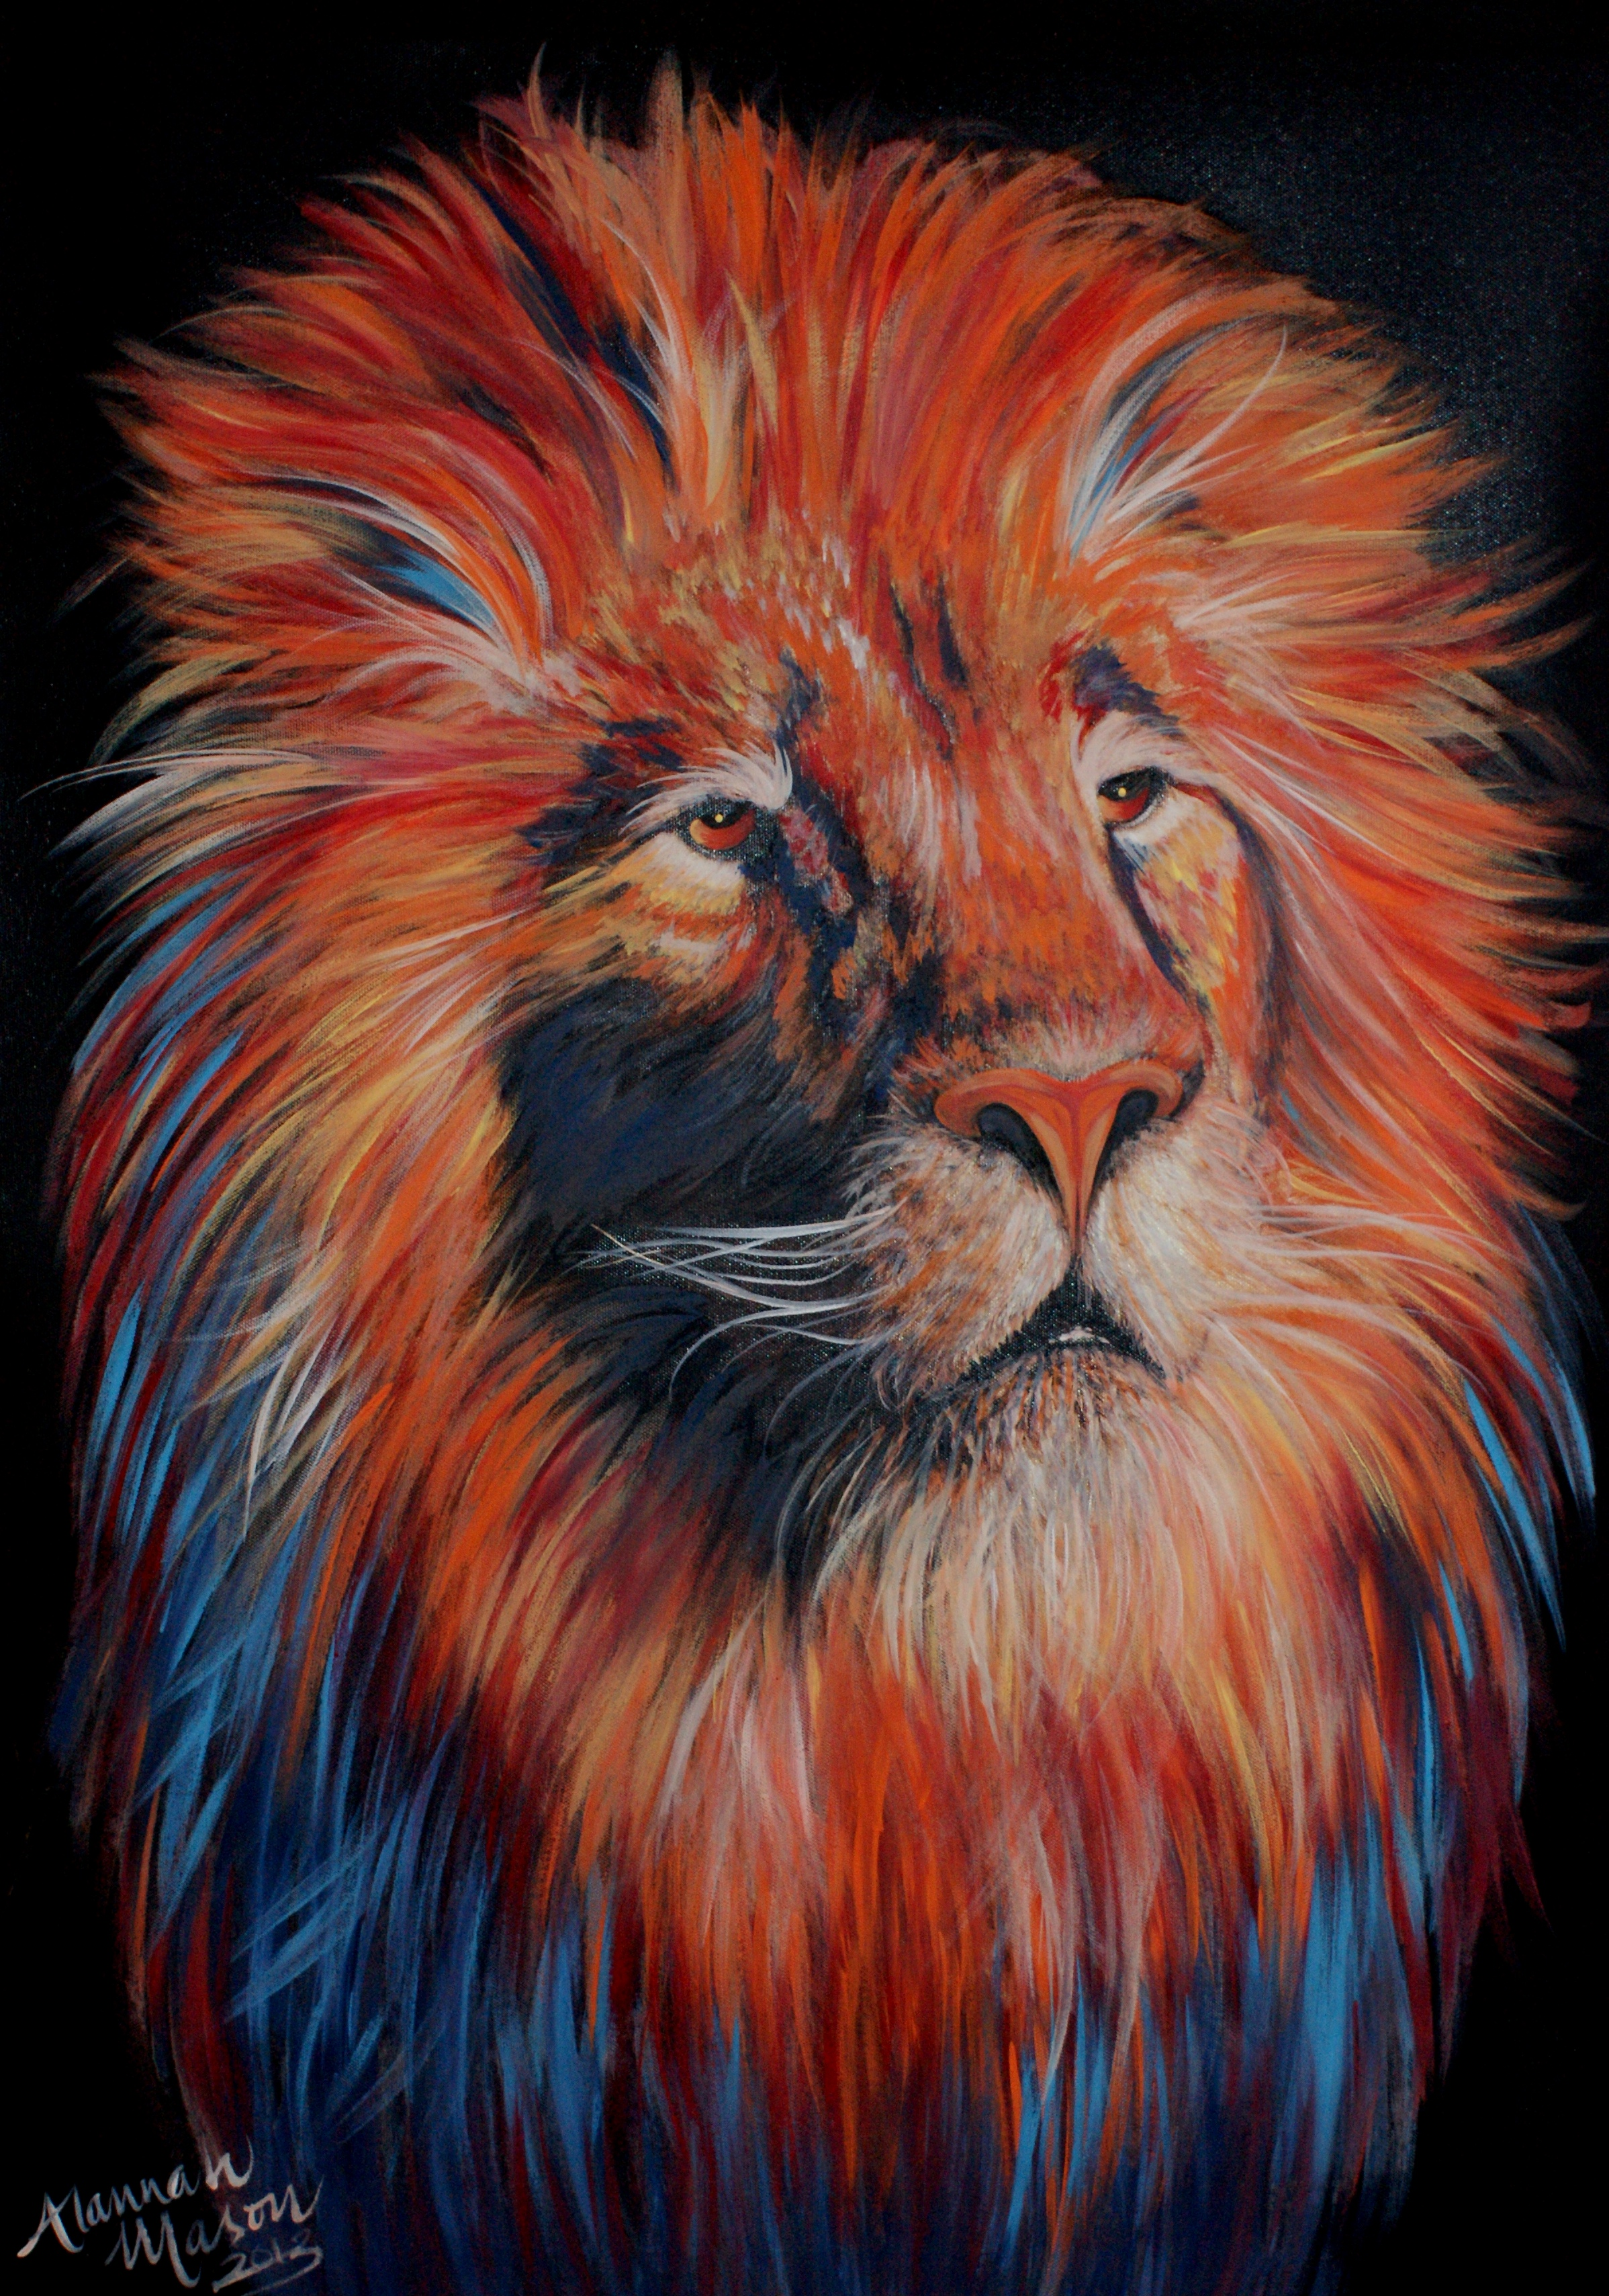 King of the Jungle 2x3ft